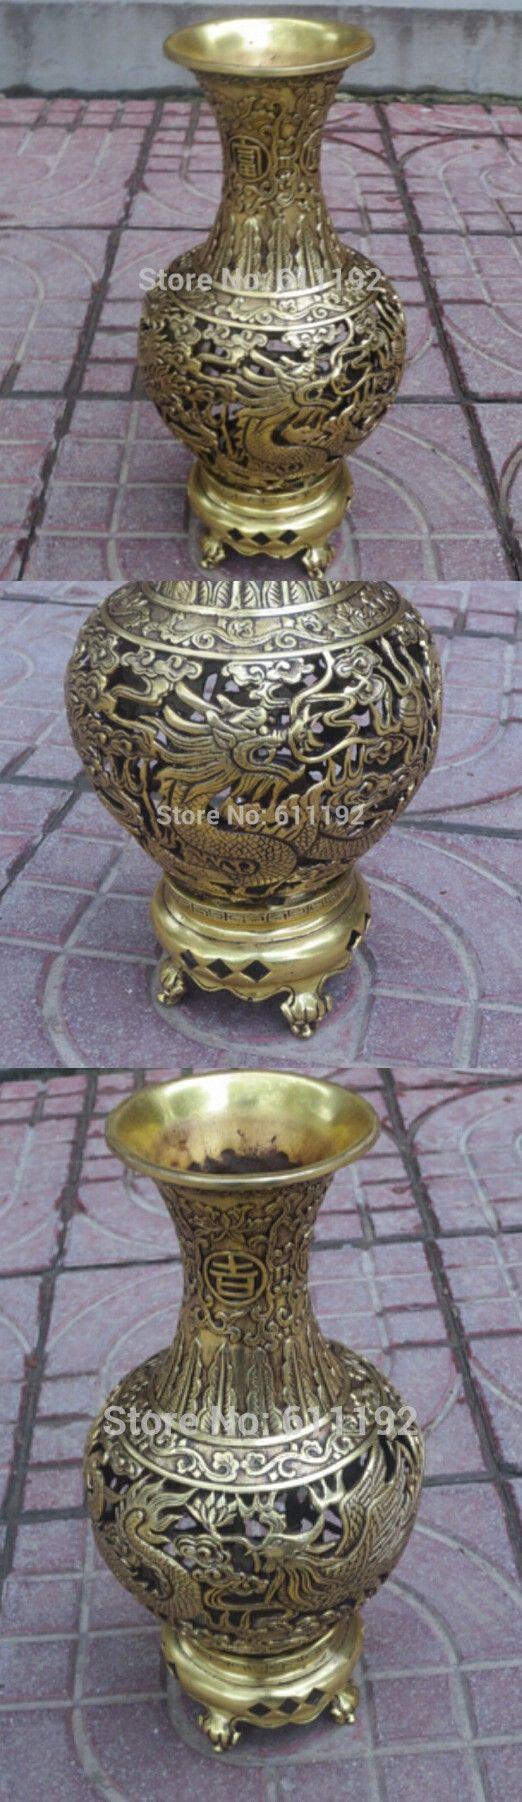 10inch high Asian Home Decor vases chinese brass Hand-carved Dragon and Phoenix Big vase $81